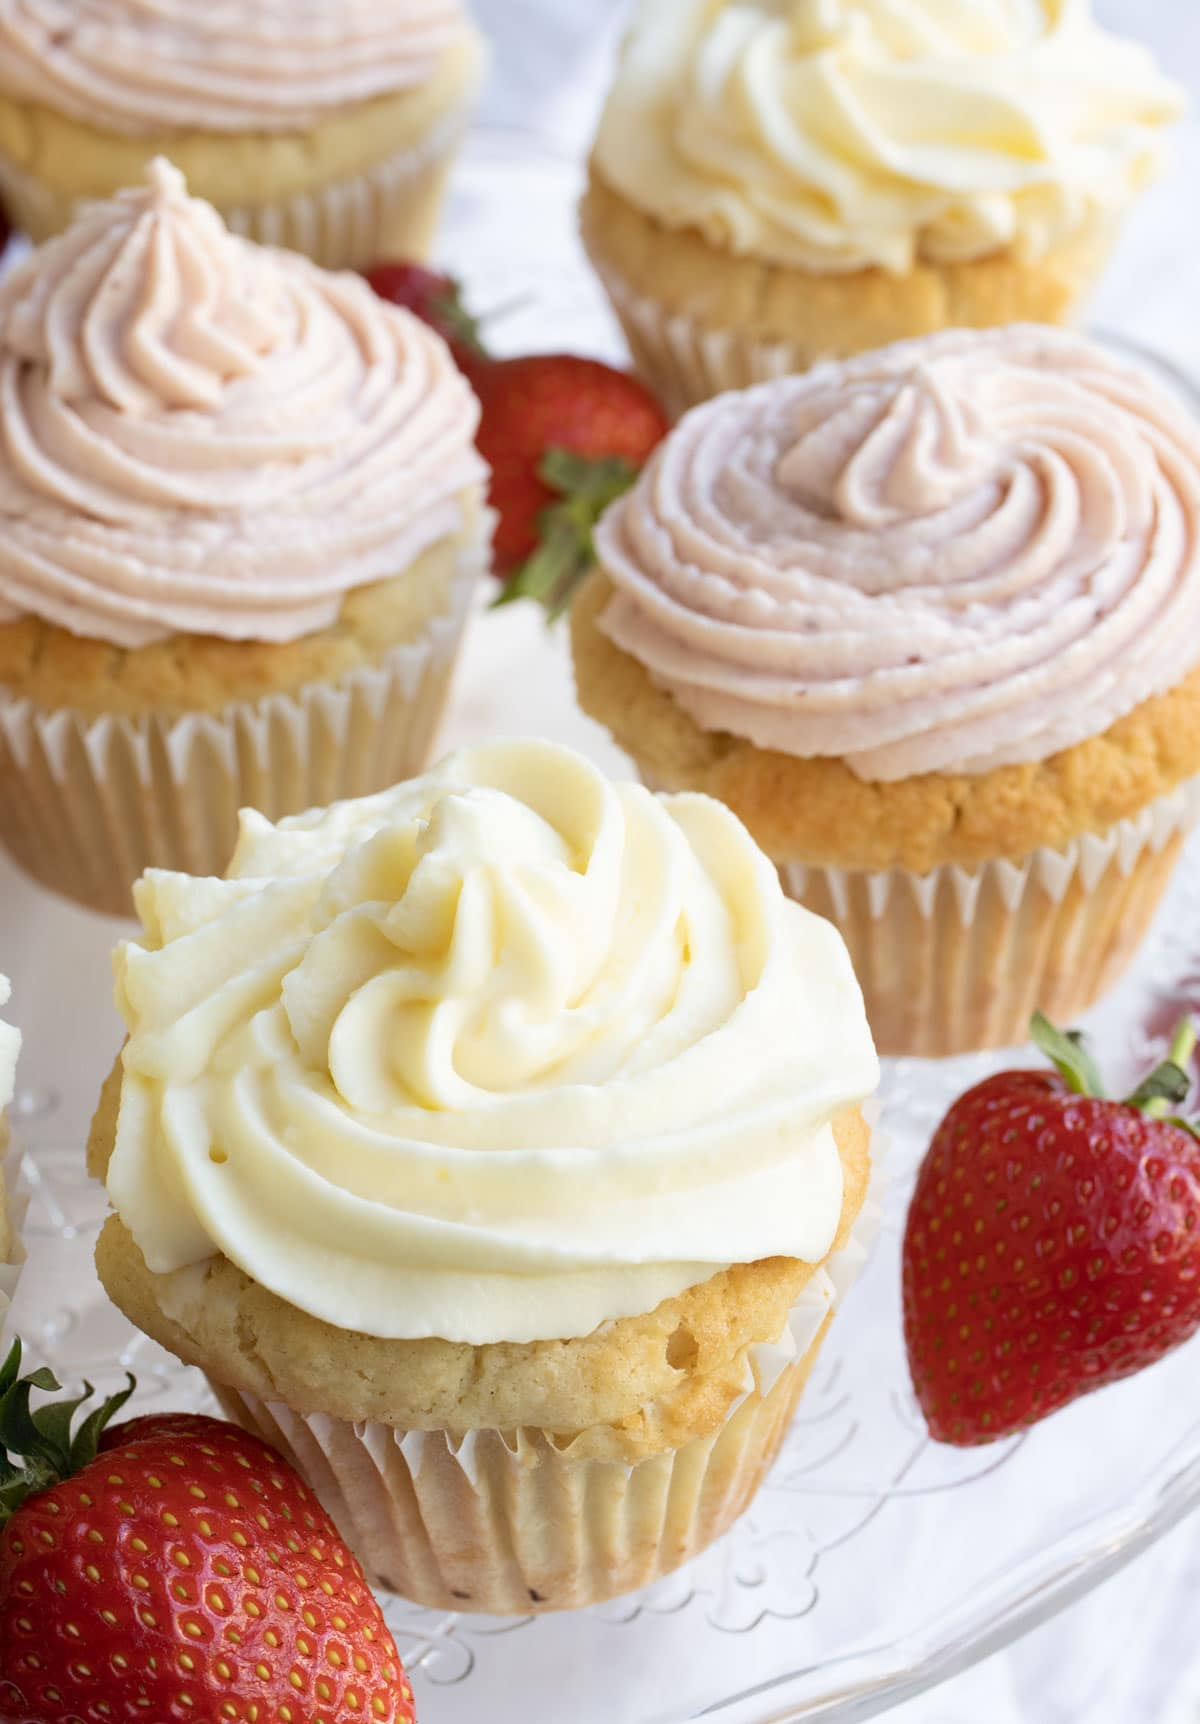 cupcakes with vanilla and strawberry frosting and strawberries on a cake stand